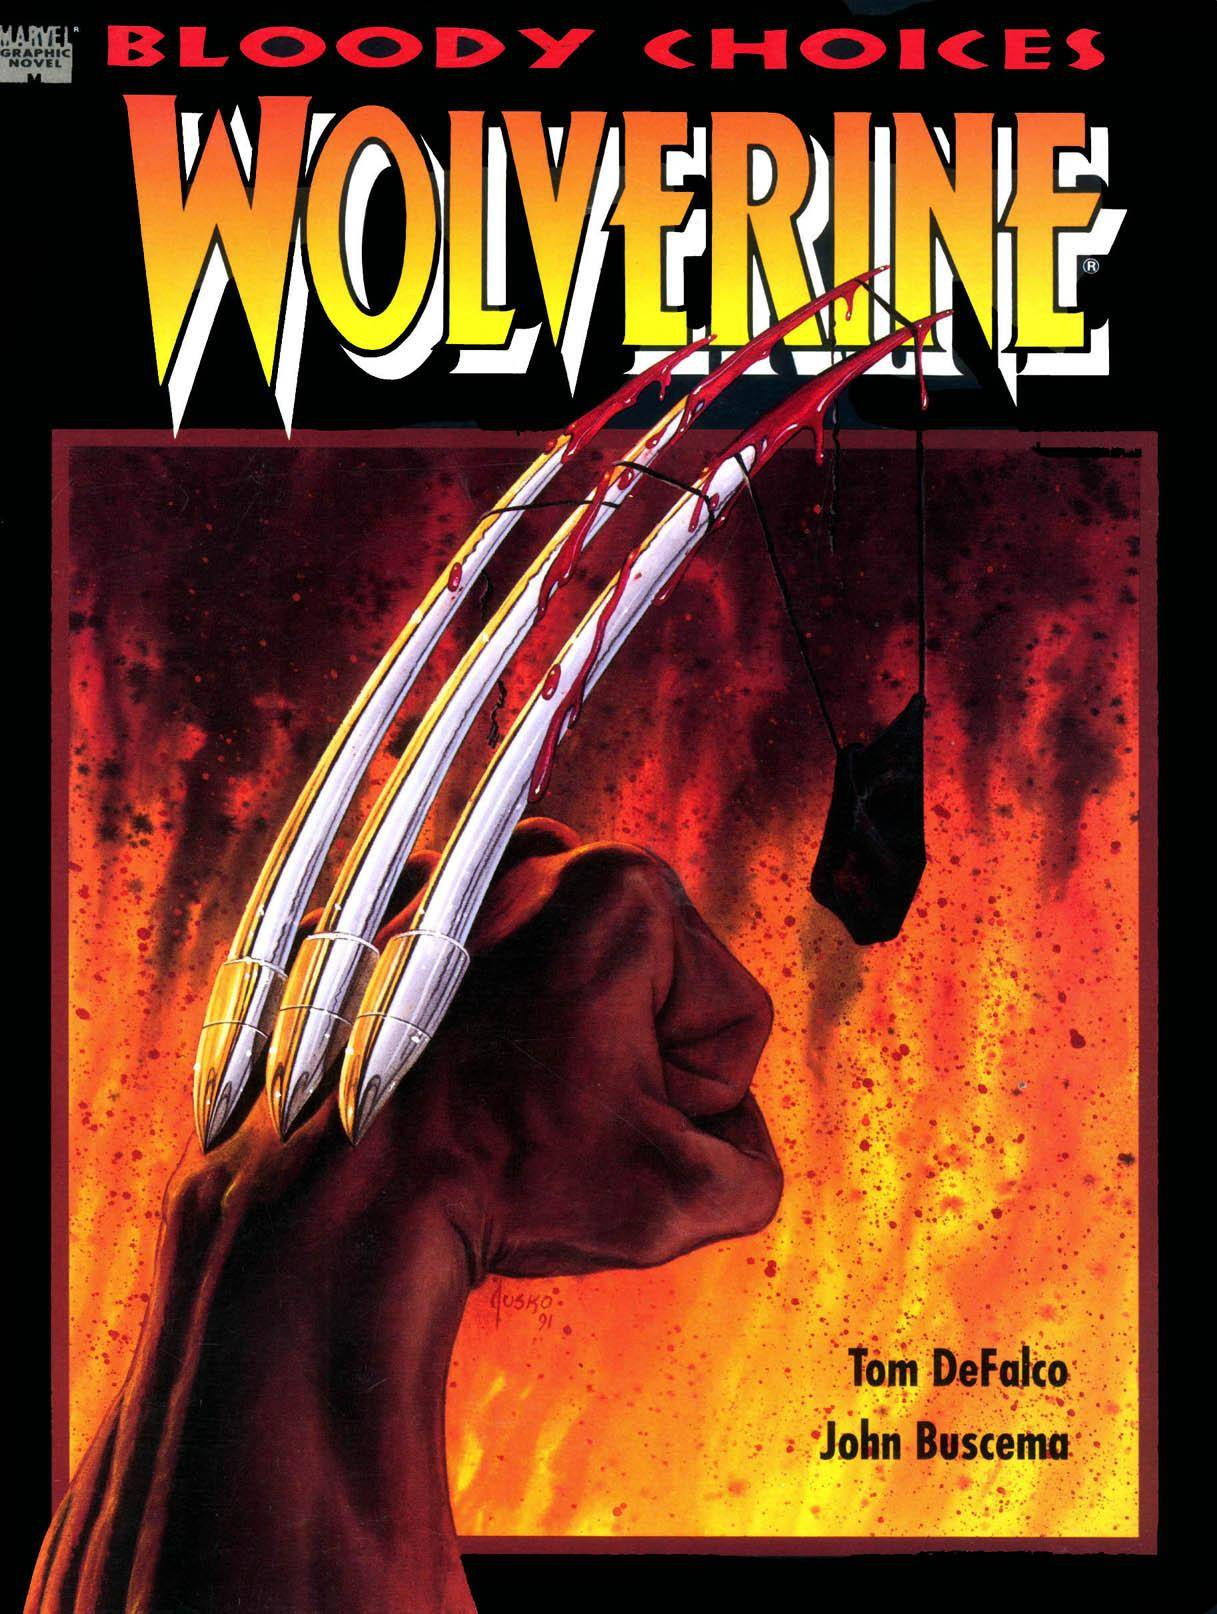 Marvel Graphic Novel 67 - Wolverine - Bloody Choices 1991